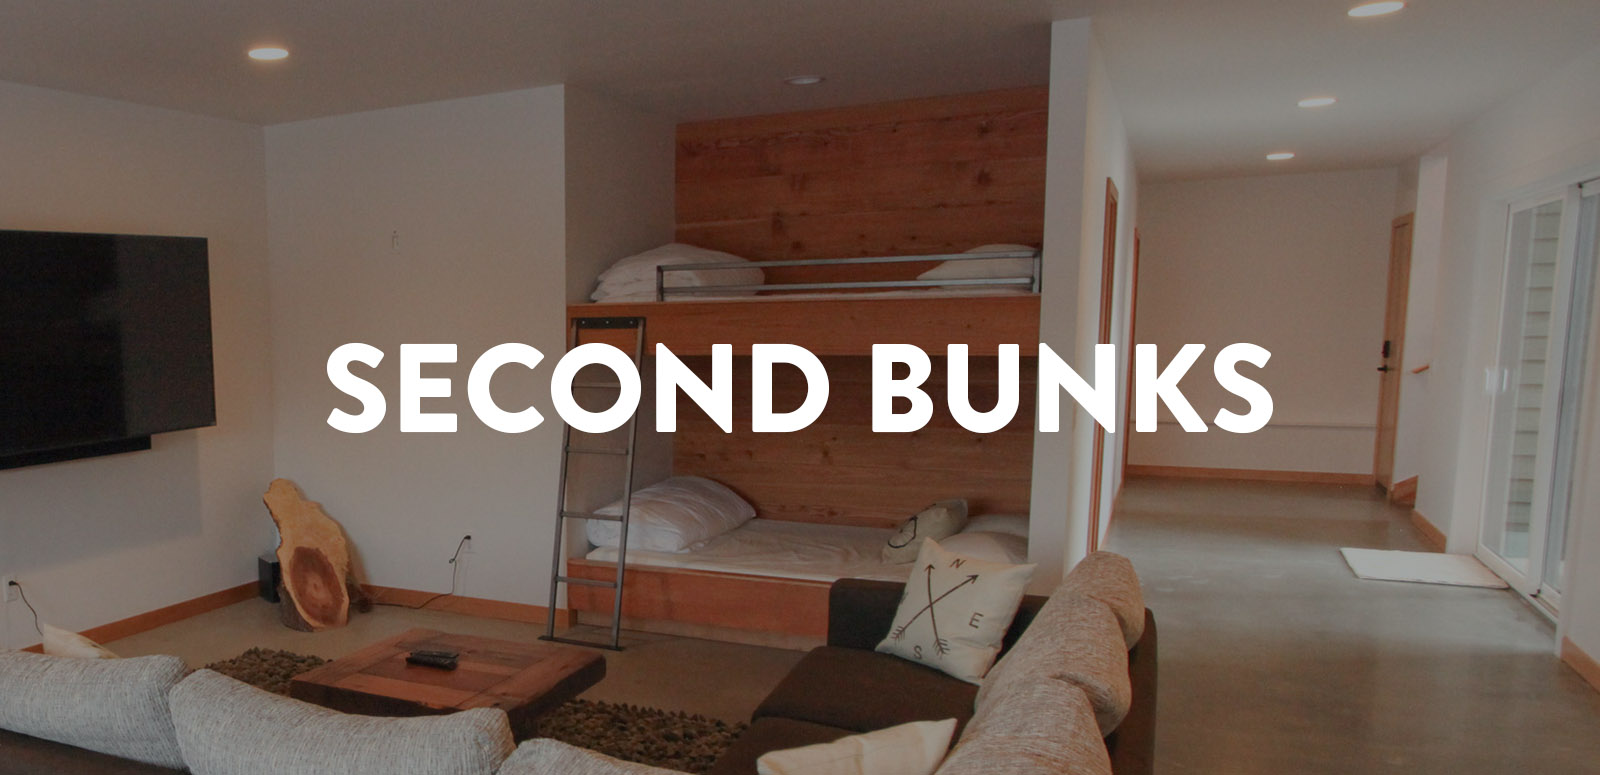 secondbunks CASCADE PRE-SALE